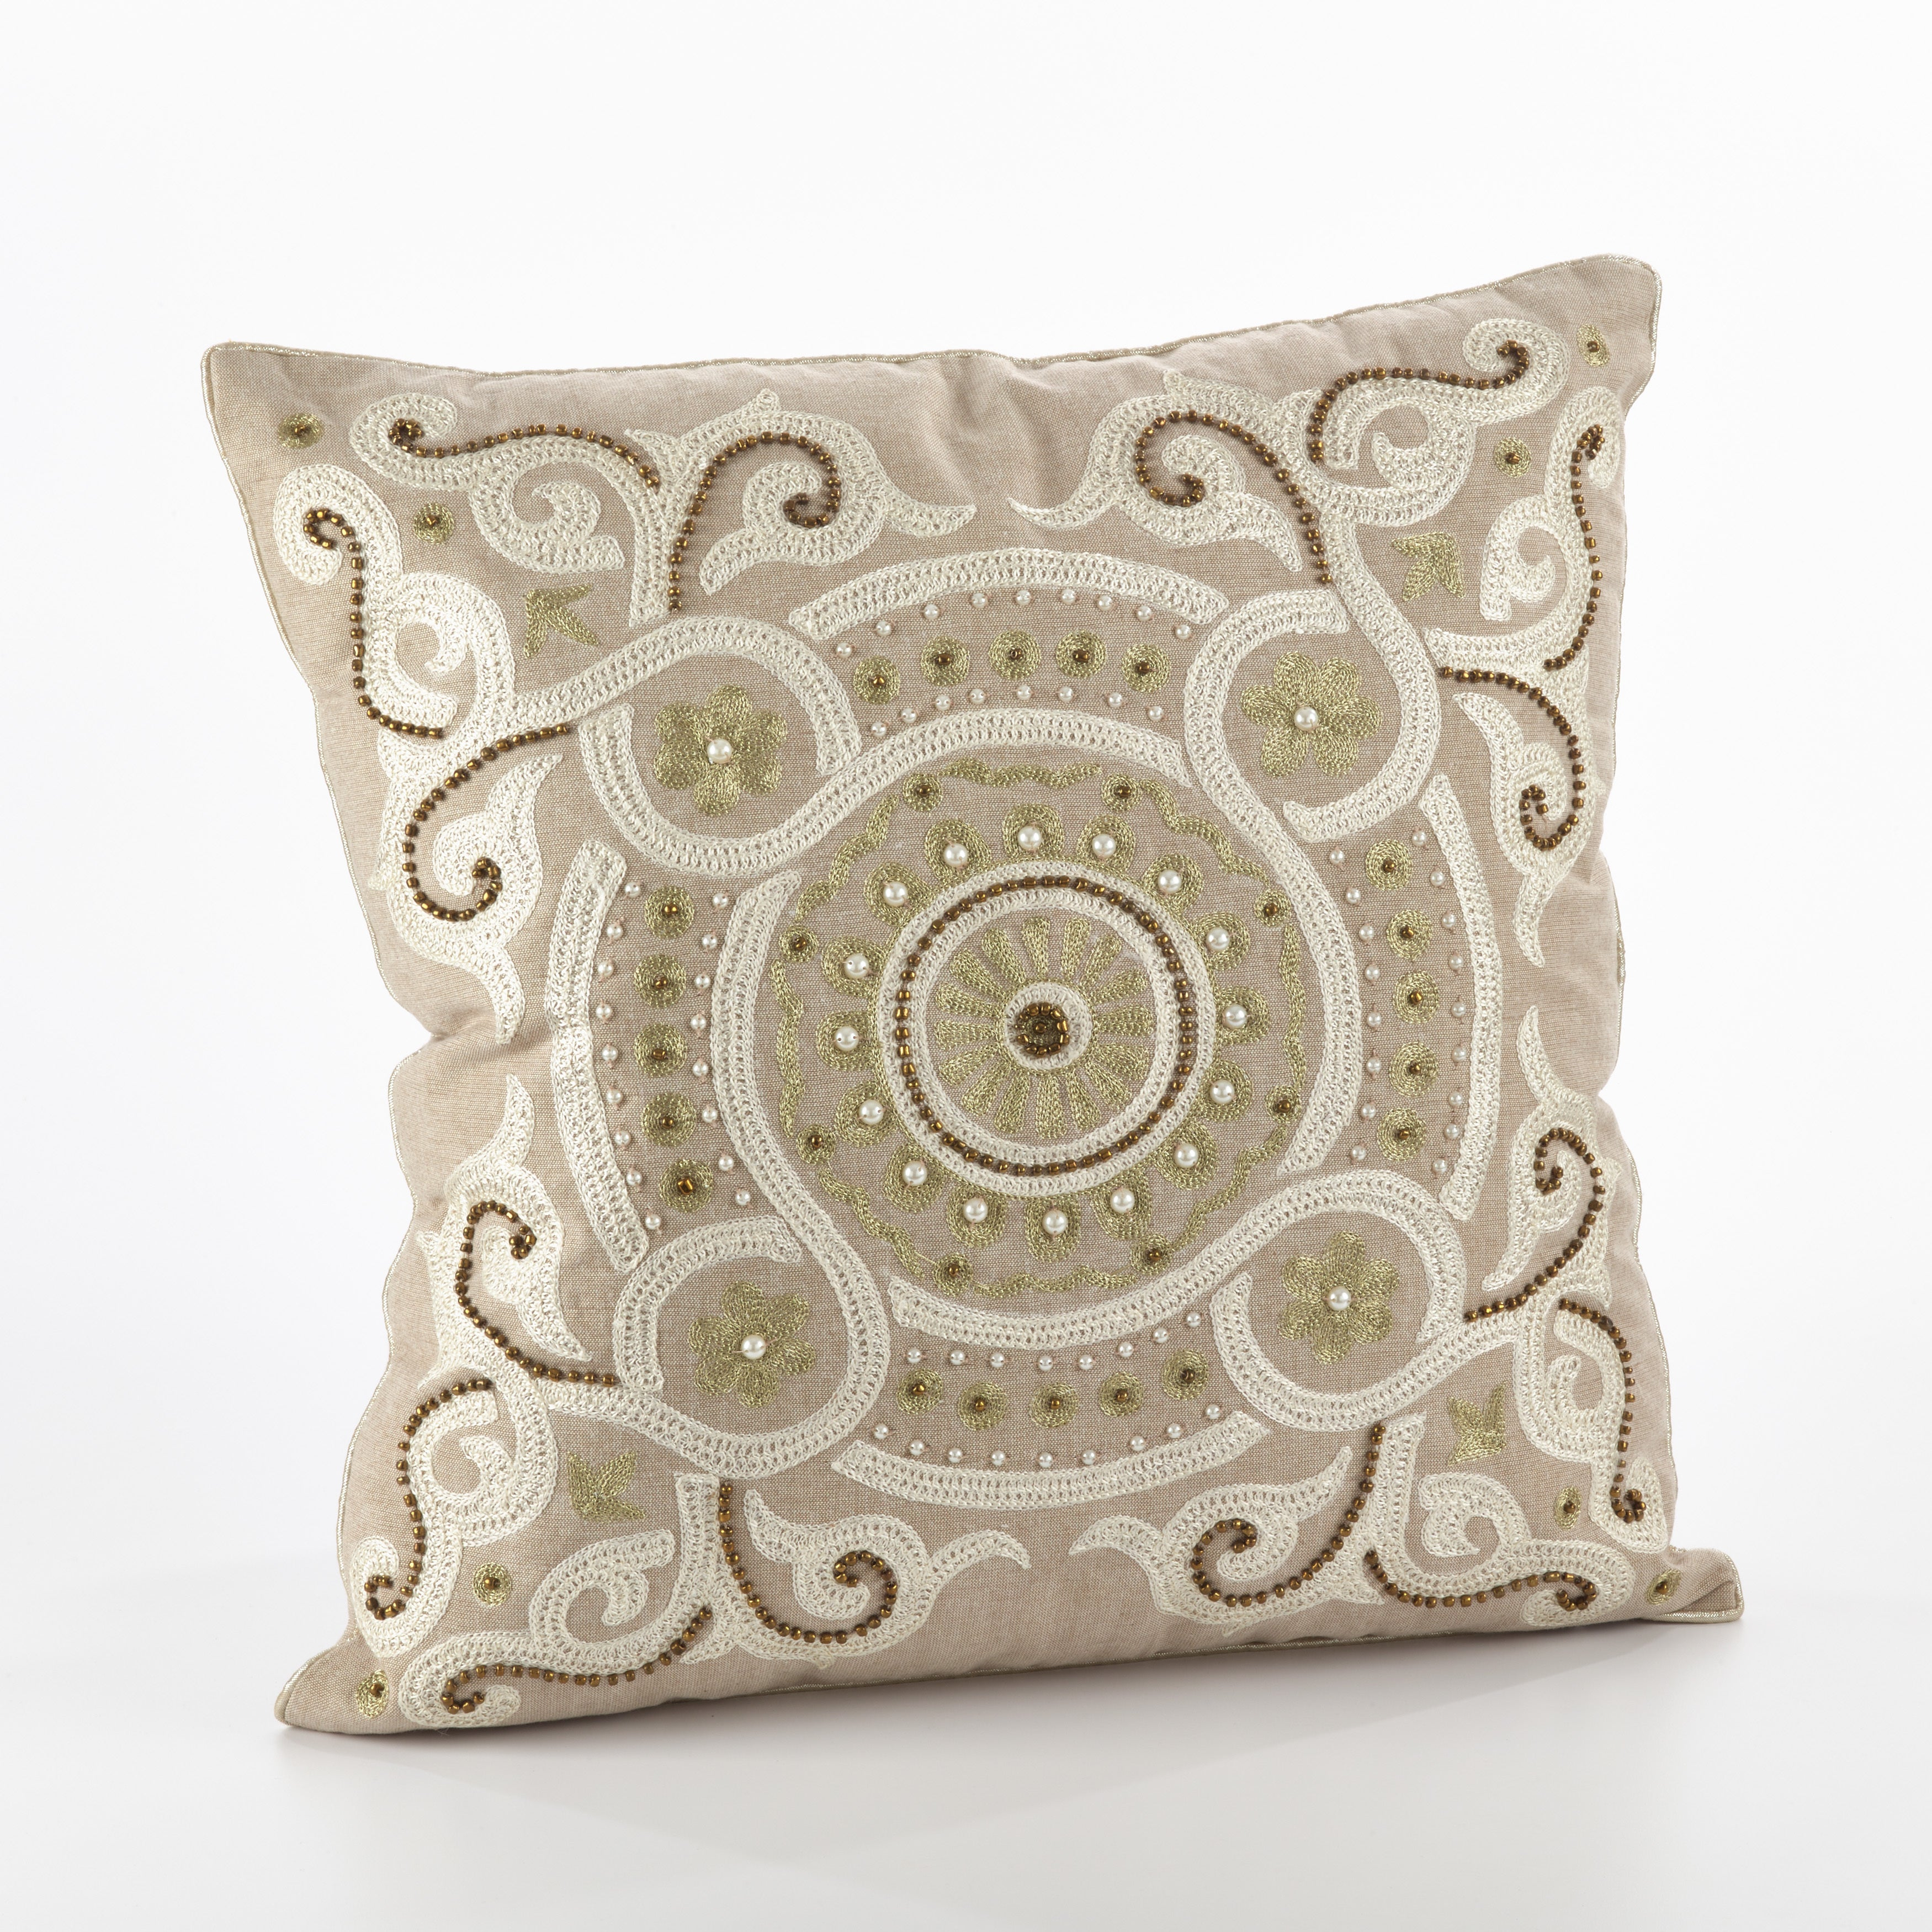 Martina Design Embroidered & Beaded Design Throw Pillow - FLD (Natural, 20 inches long x 20 inches wide)